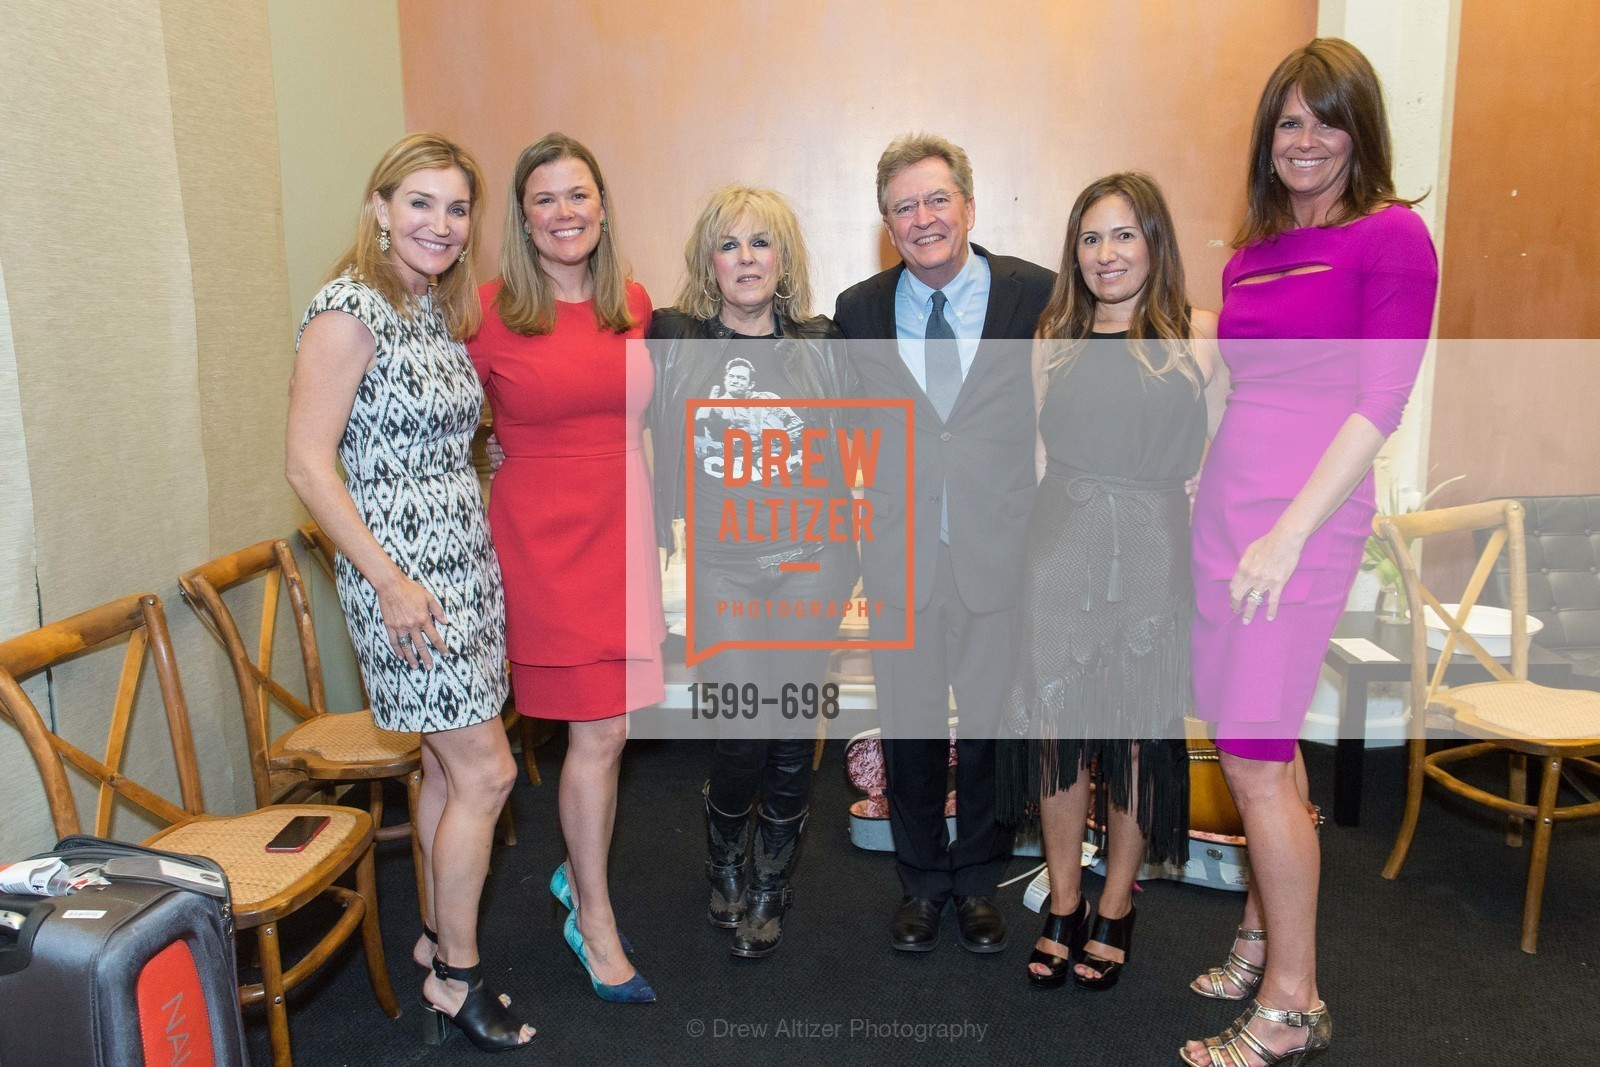 Maggie Mack, Heather White, Ken Cook, Ingrid Carney, Christine Gardner, EWG's 6th Annual Earth Dinner, US, May 5th, 2015,Drew Altizer, Drew Altizer Photography, full-service agency, private events, San Francisco photographer, photographer california